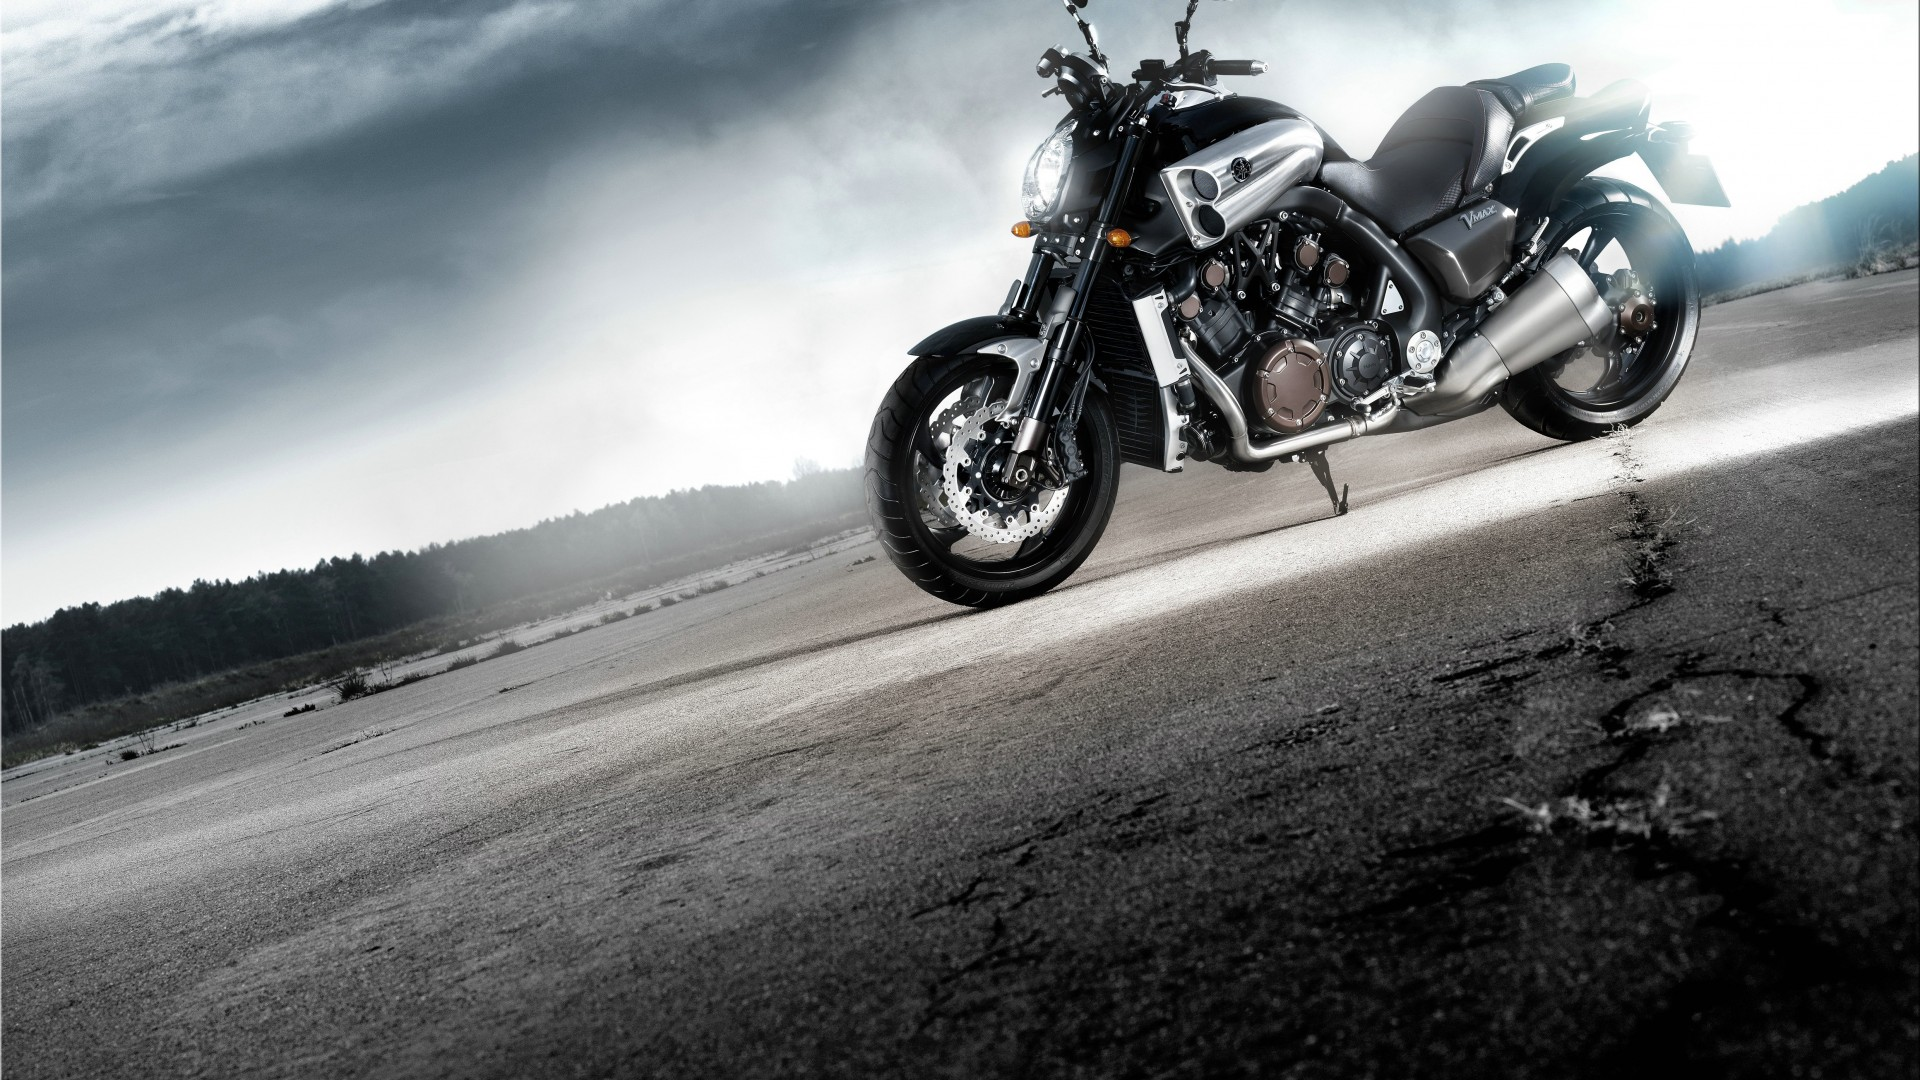 Yamaha VMAX, V-Max, motorcycle, cruiser, bike, test drive, buy, rent, road (horizontal)